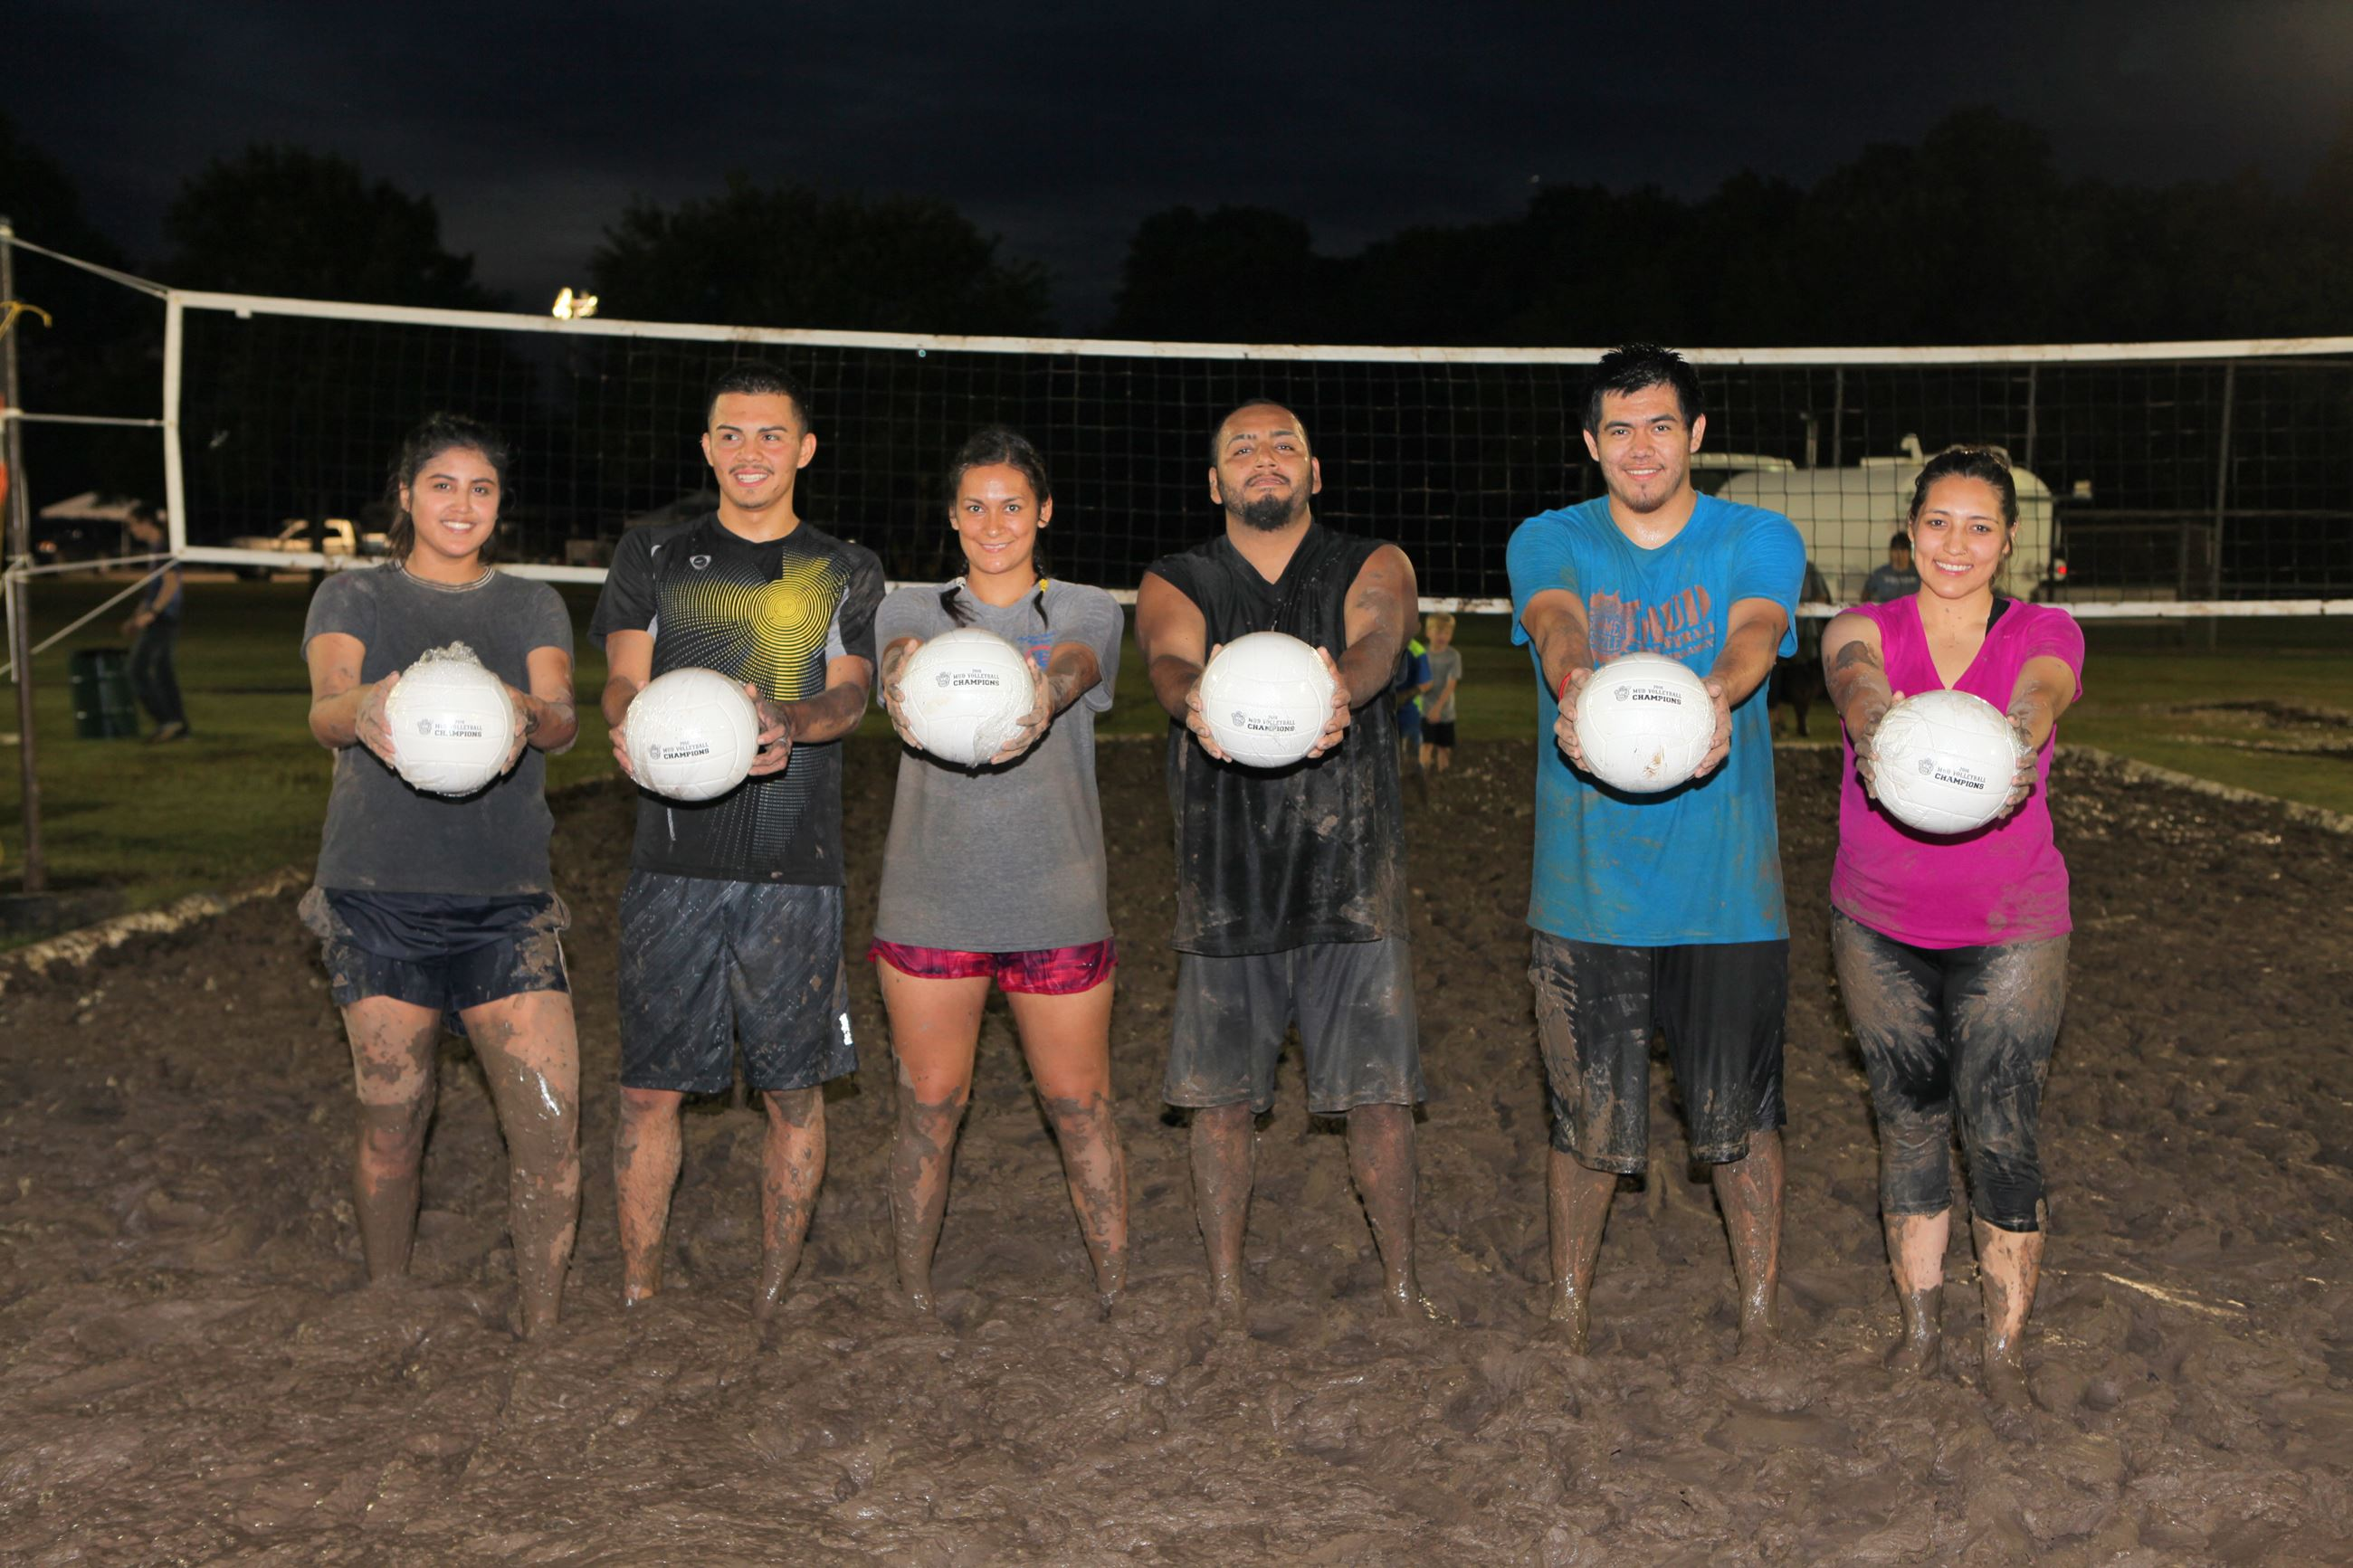 Mud Volleyball Champions - 6 Pack